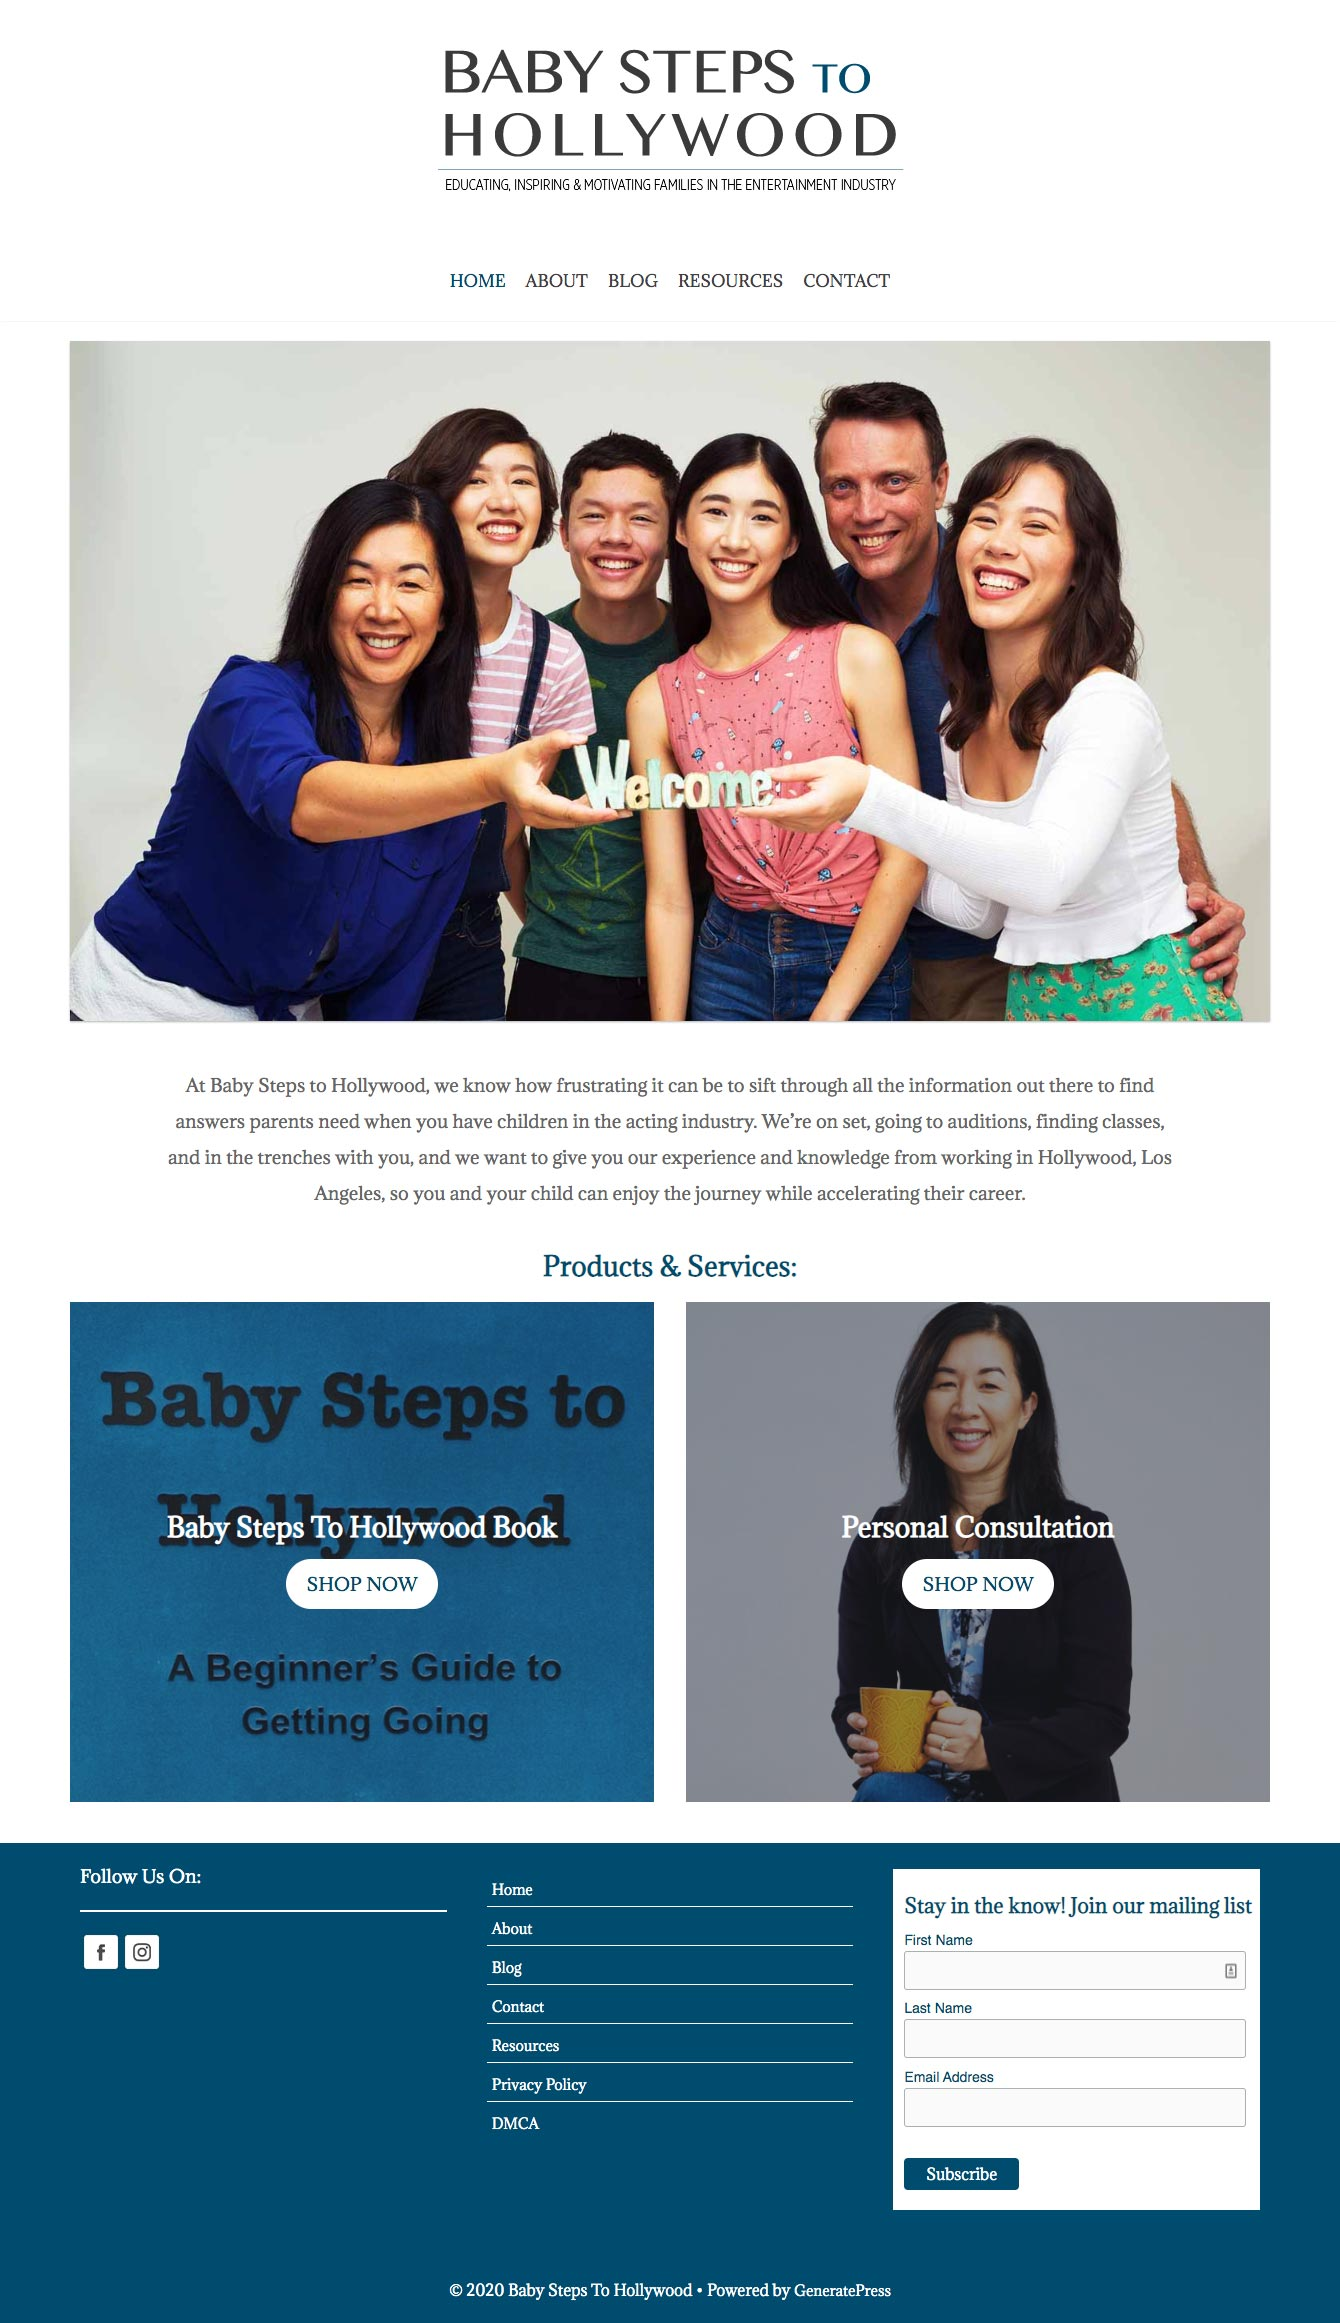 Baby Steps To Hollywood Home Page